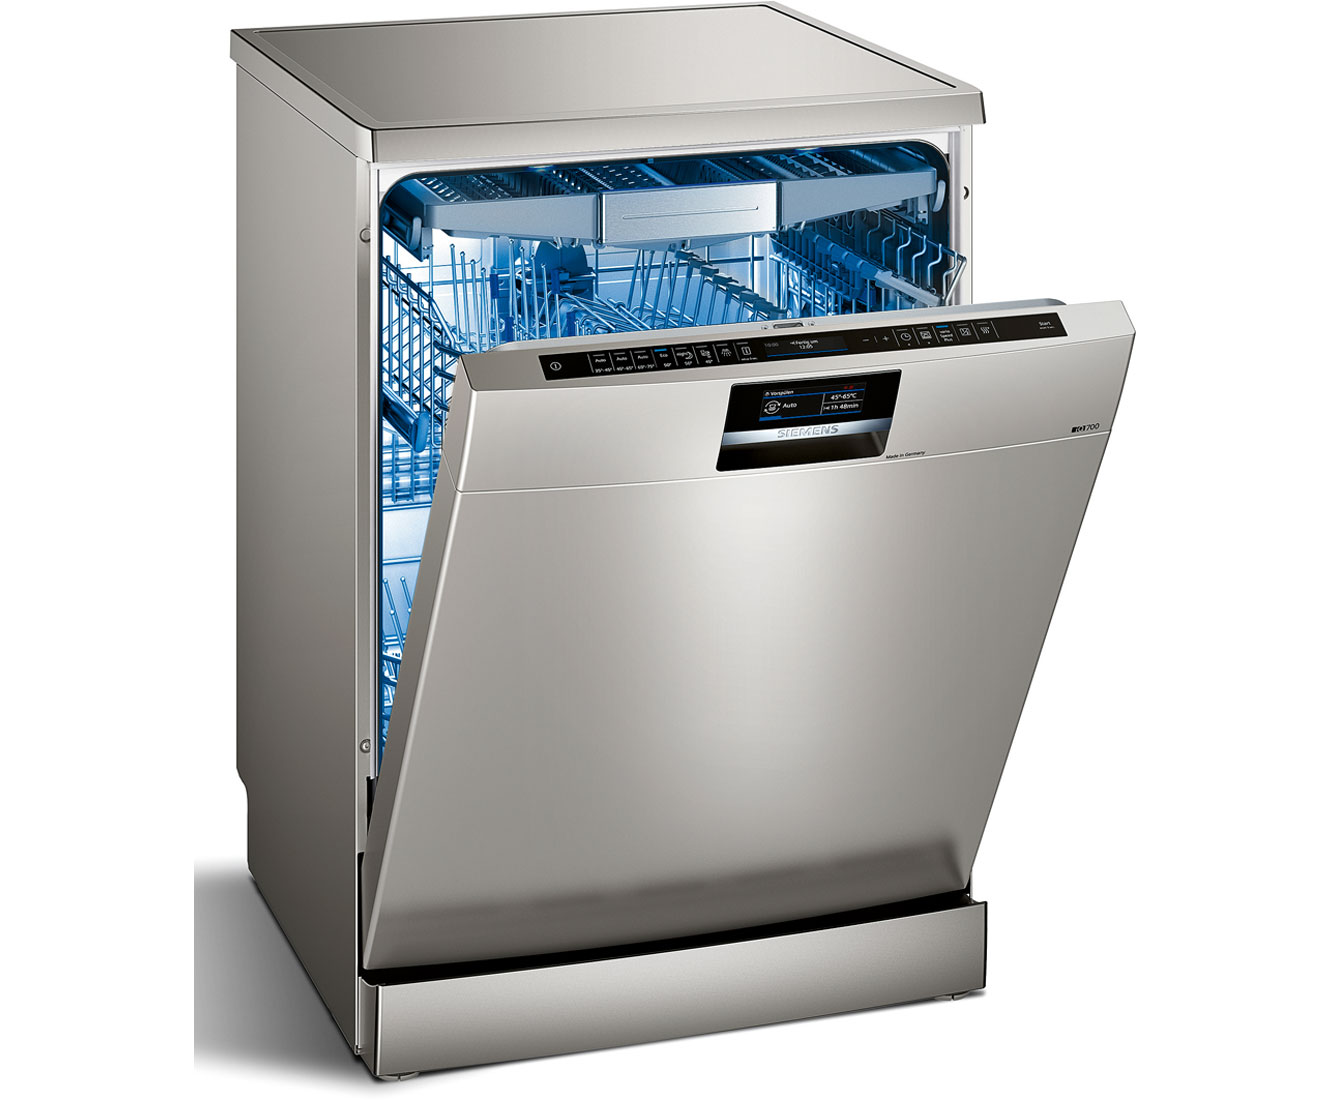 buy cheap siemens dishwasher compare dishwashers prices. Black Bedroom Furniture Sets. Home Design Ideas